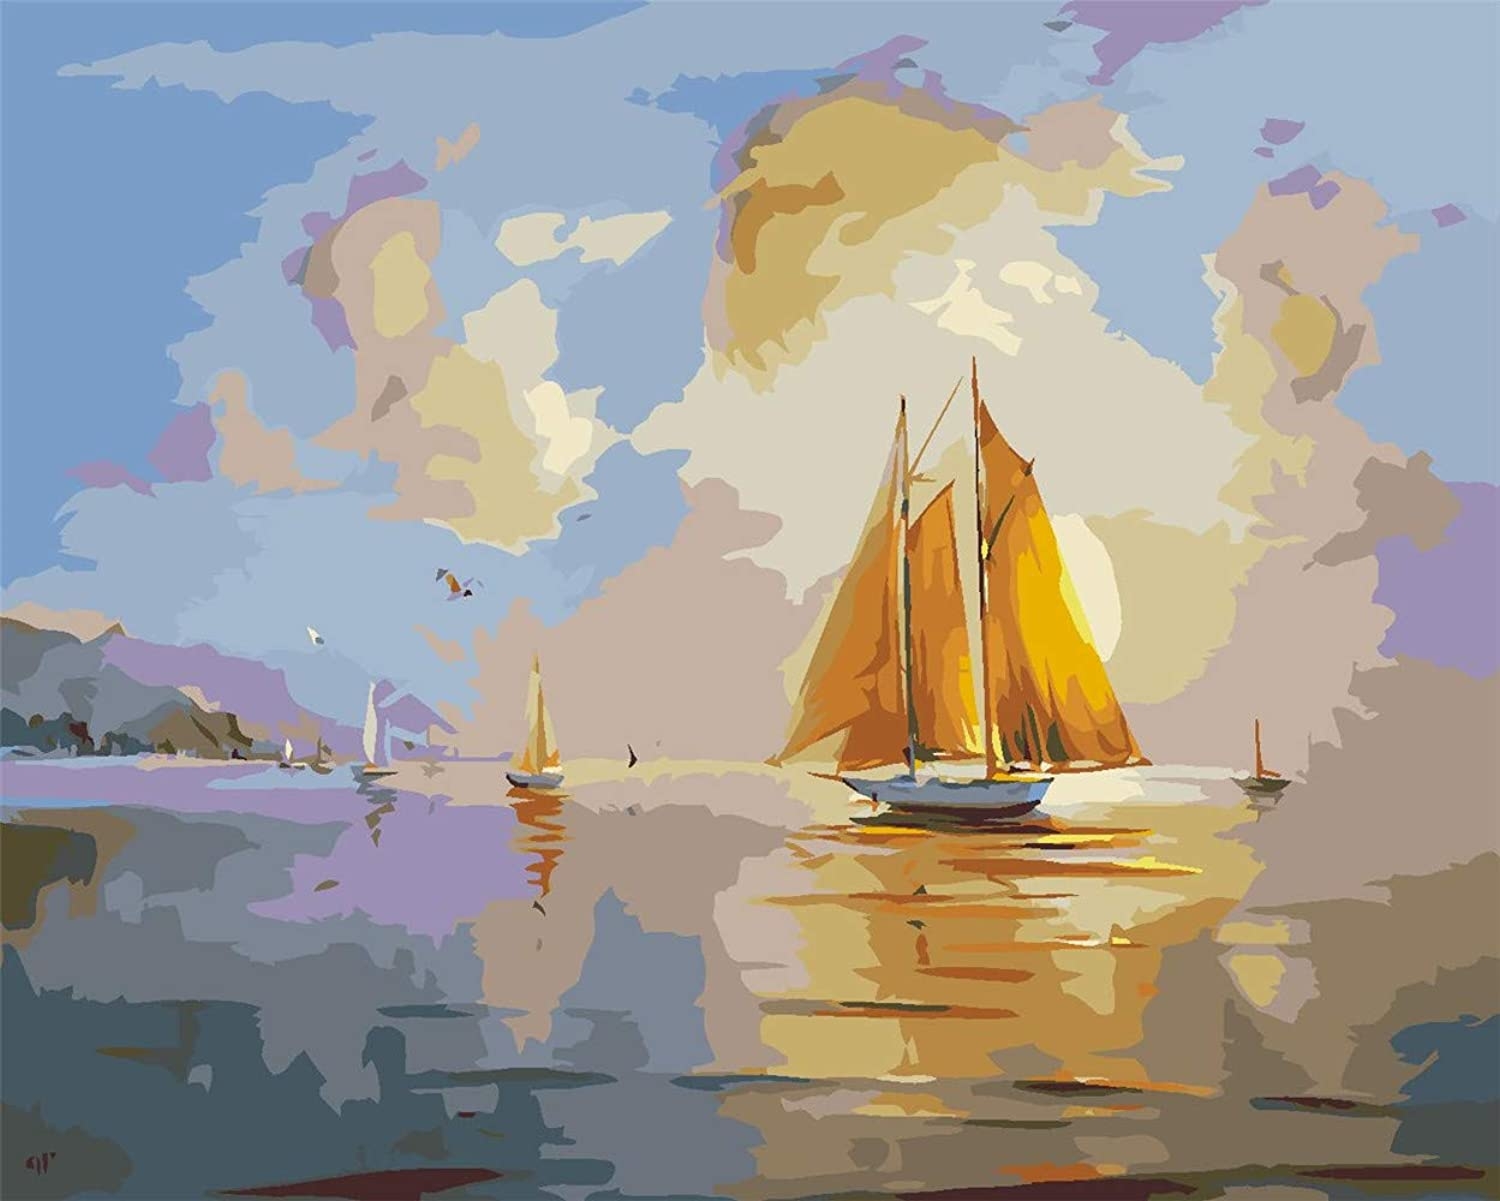 Diy Oil Painting Paint By Number Kit For Adults, color By Number, color By Number,Ocean Sailboat,16''X20''